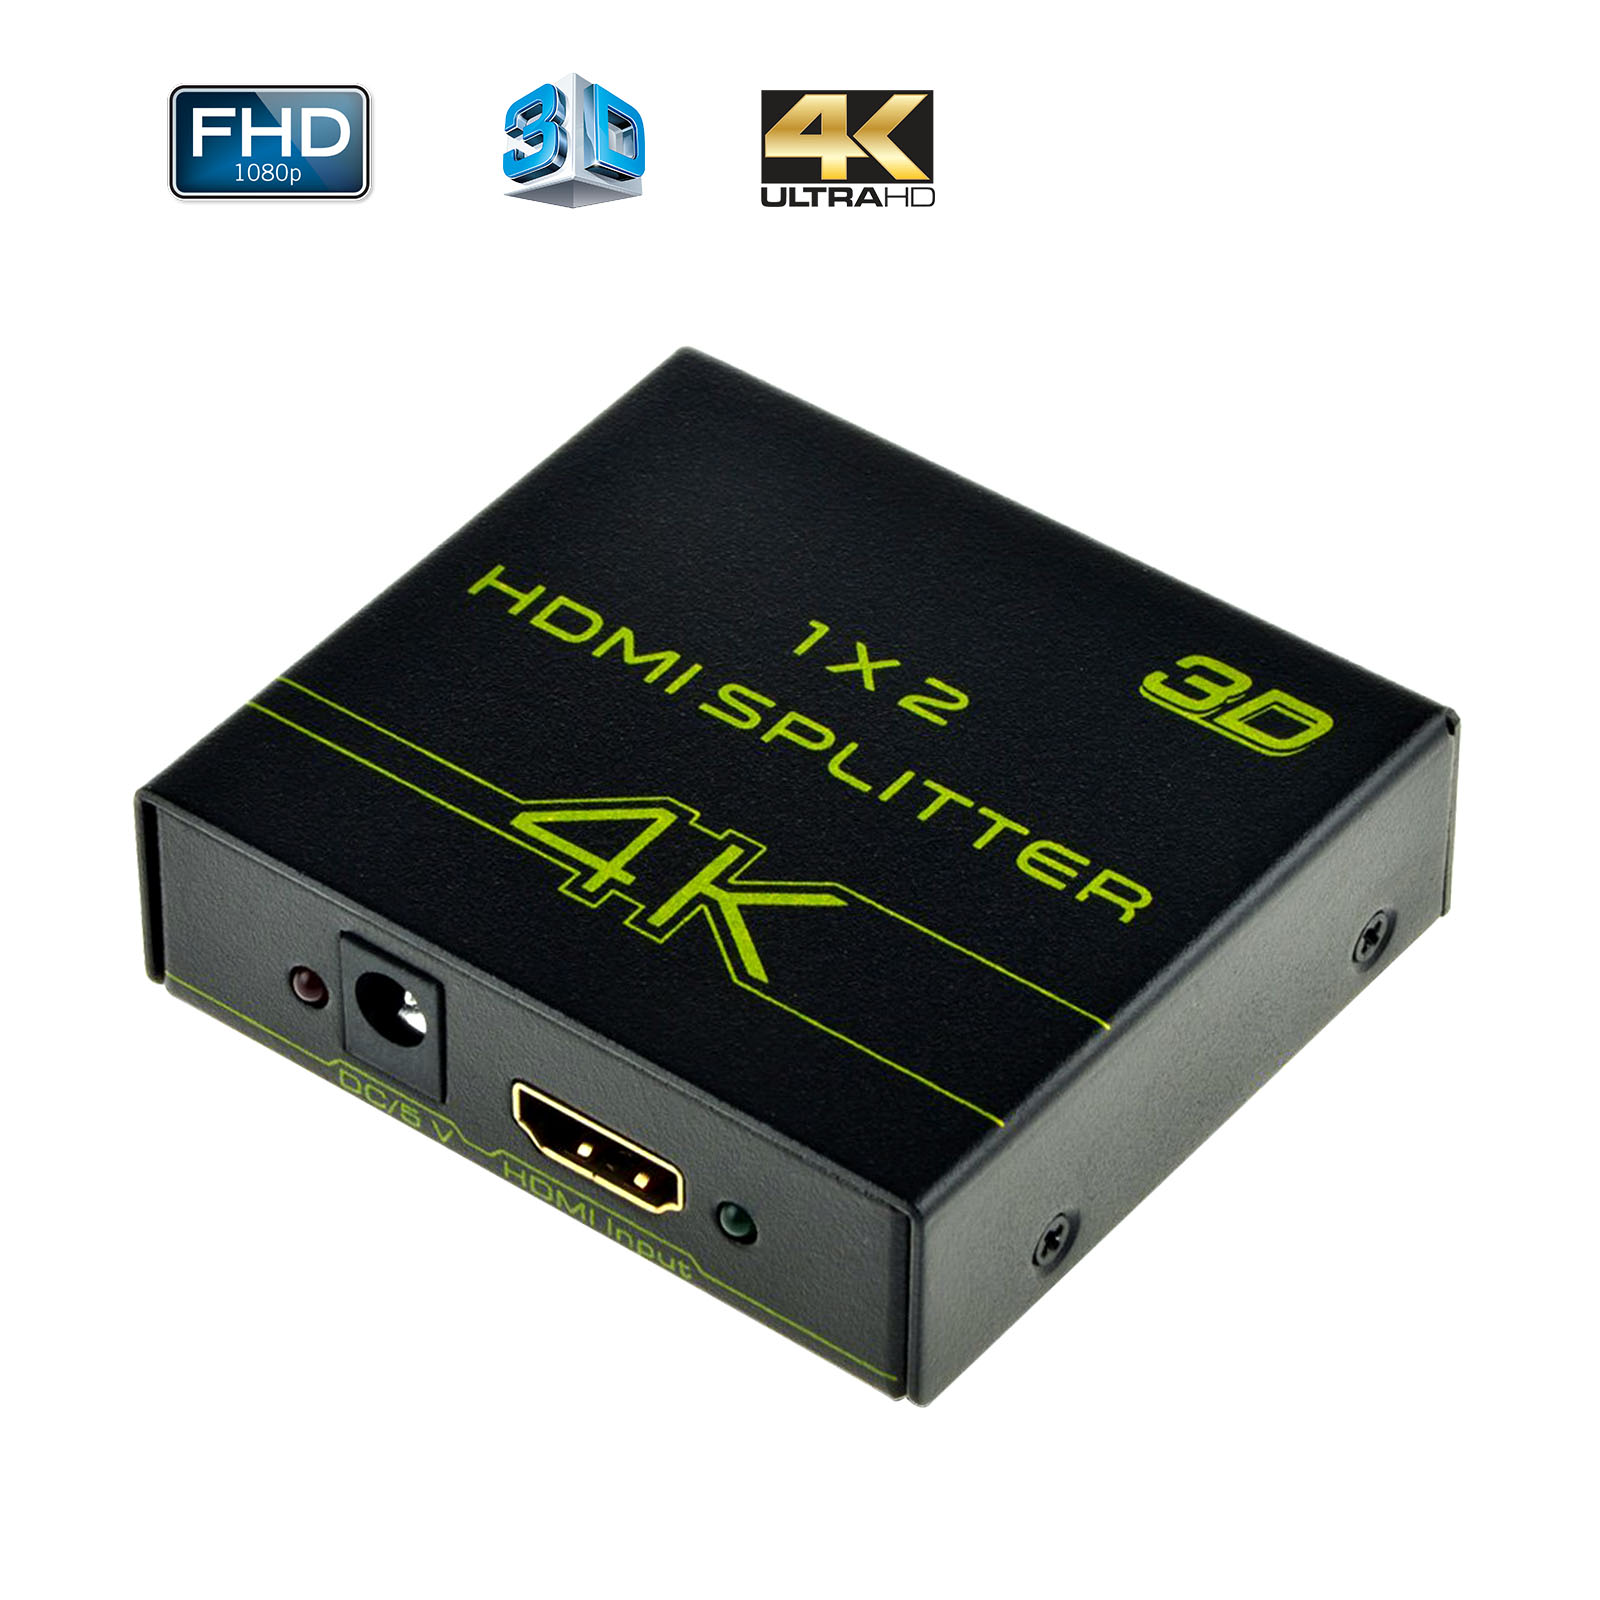 EEEKit Ulra 4K Full HD 3D 1080P HDMI Splitter 1 In 2 Out Adapter Hub Signal Distributor for HDTV Camera PS4 HDMI Devices